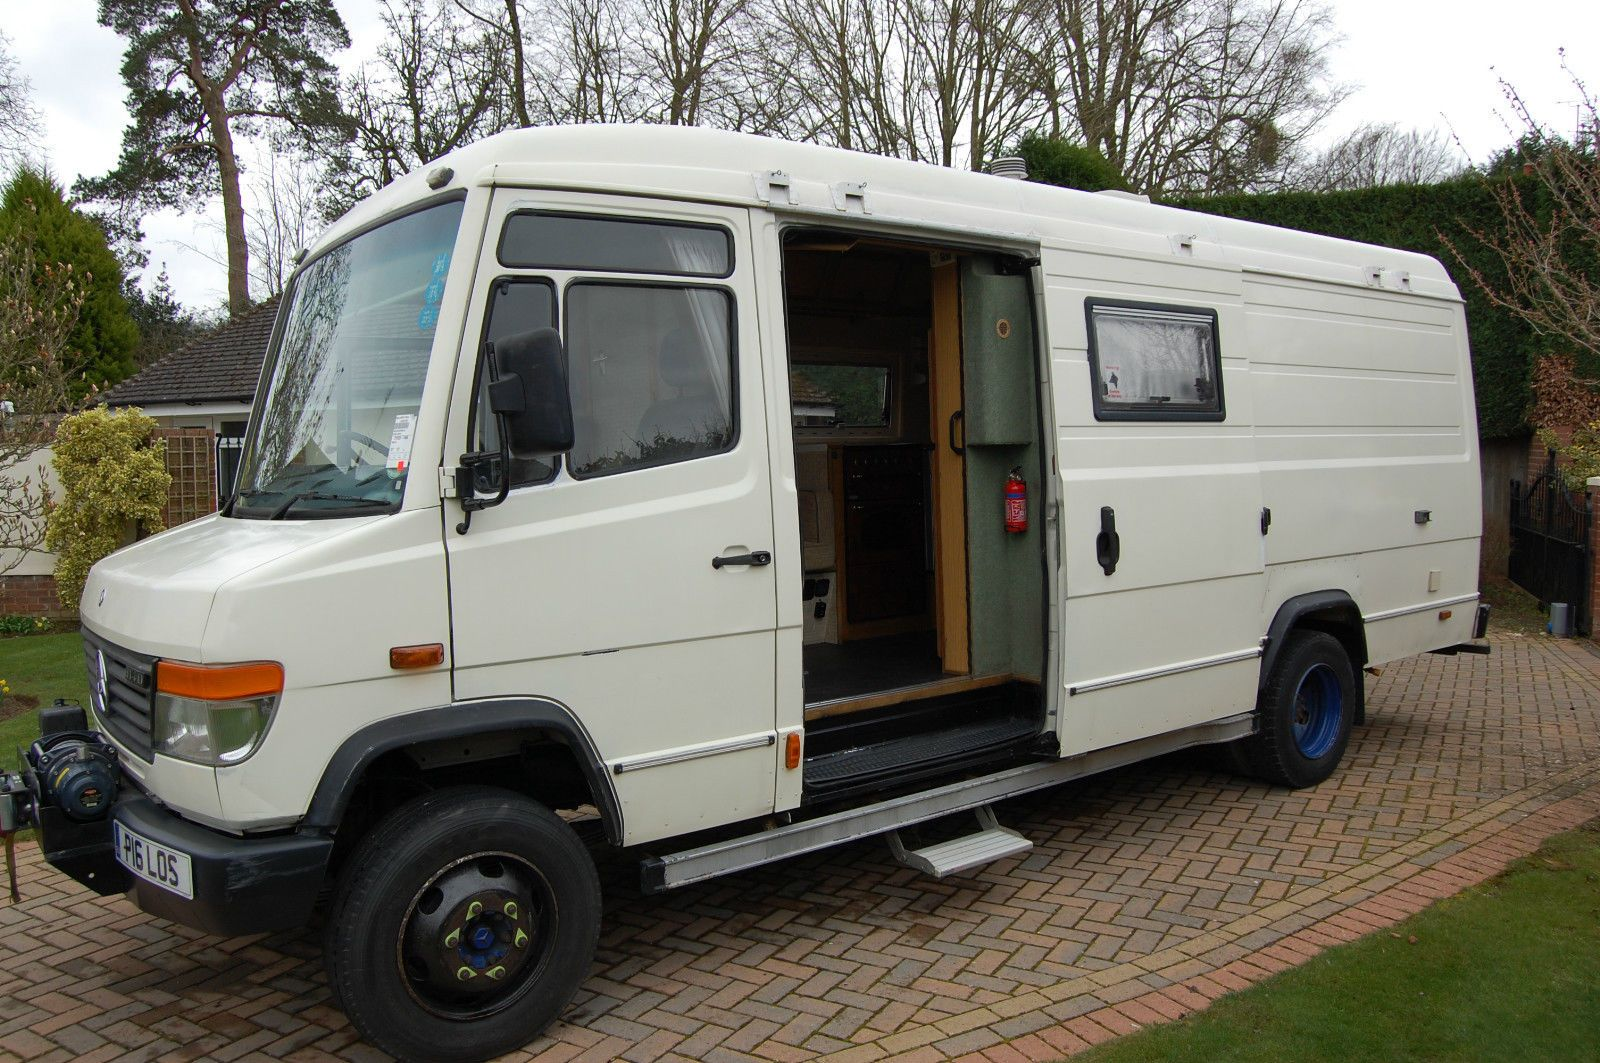 Mercedes Benz Vario 814D LWB Expedition Overland Camper Van Motorhome Race  Truck In Cars, Motorcycles